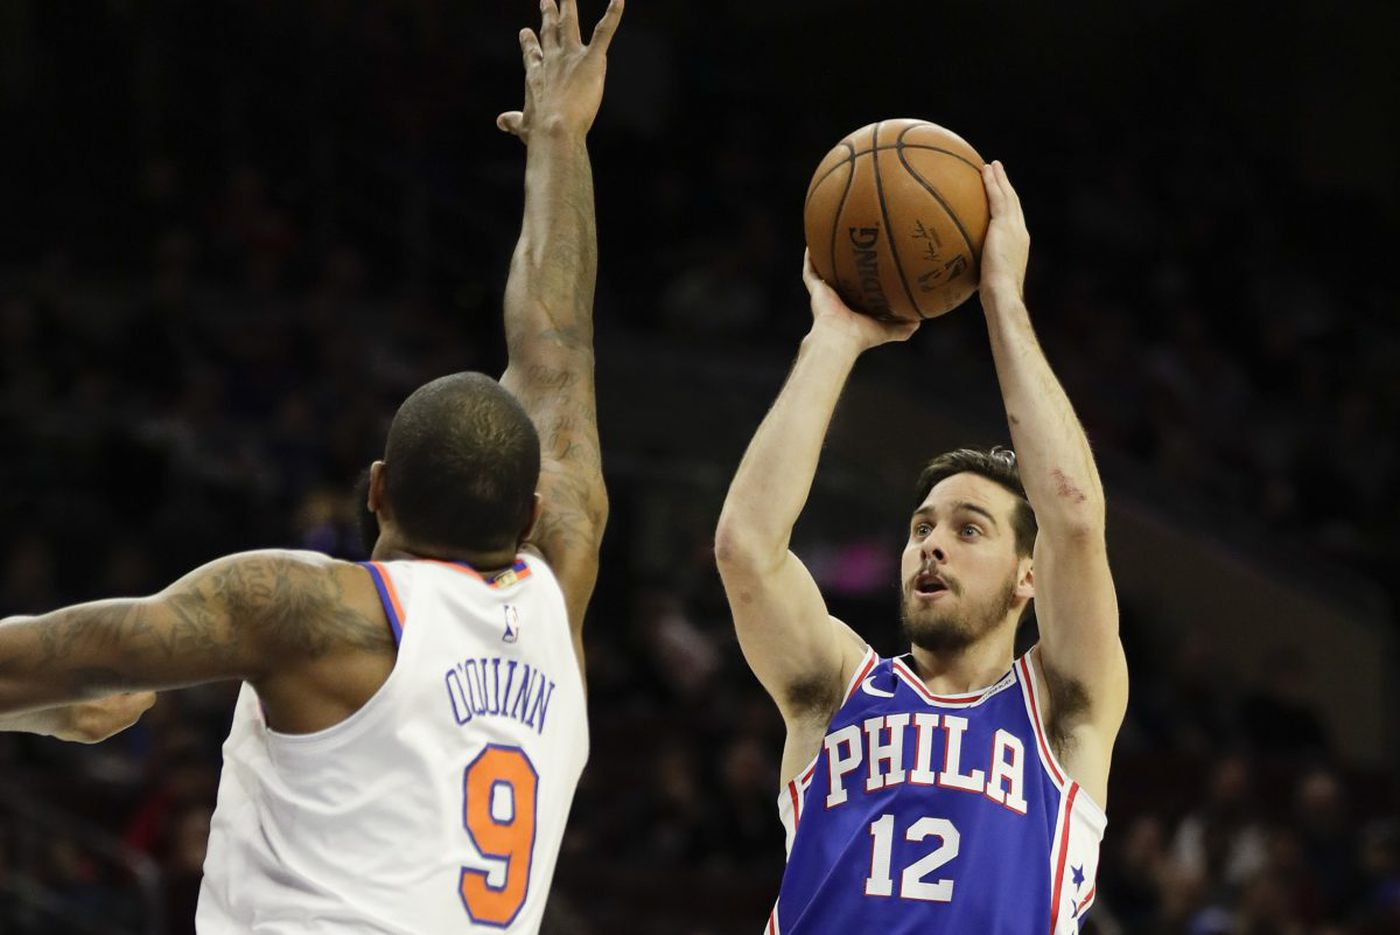 Sixers-Knicks preview: Brett Brown's squad looks to extend win streak to eight games